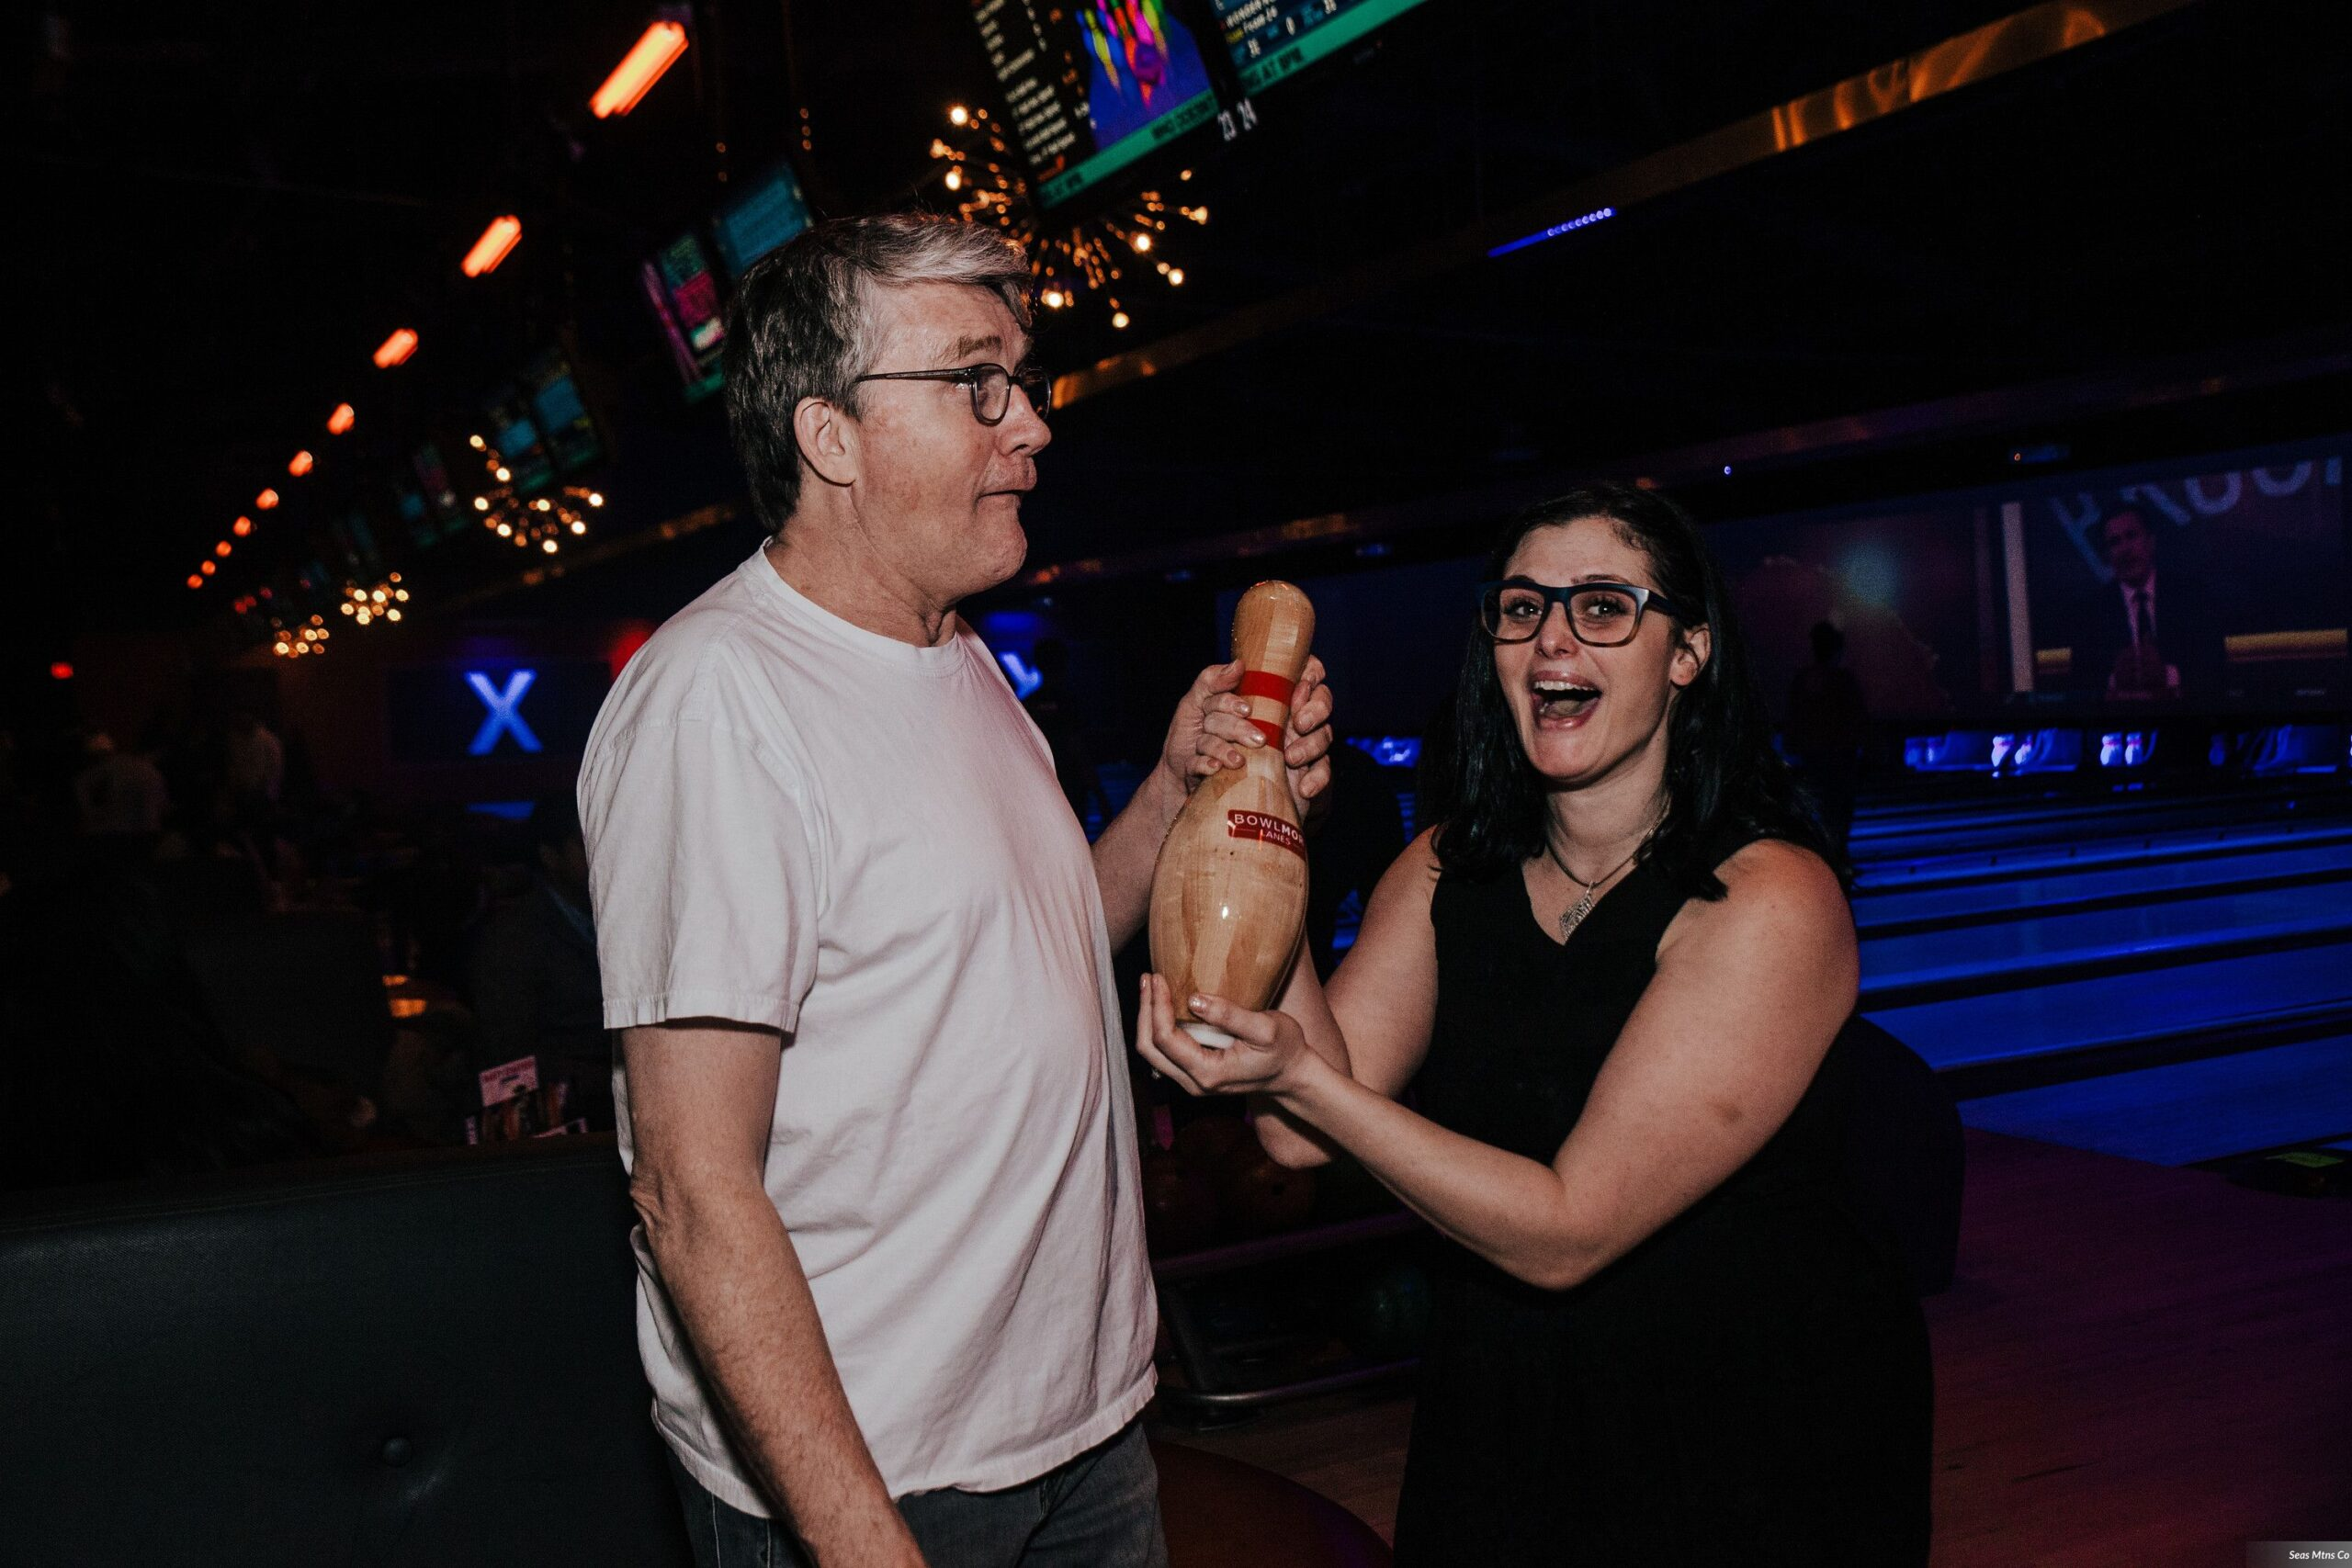 Bride and Groom making funny faces holding bowling pin at Bowlmor Lanes during afterparty of wedding